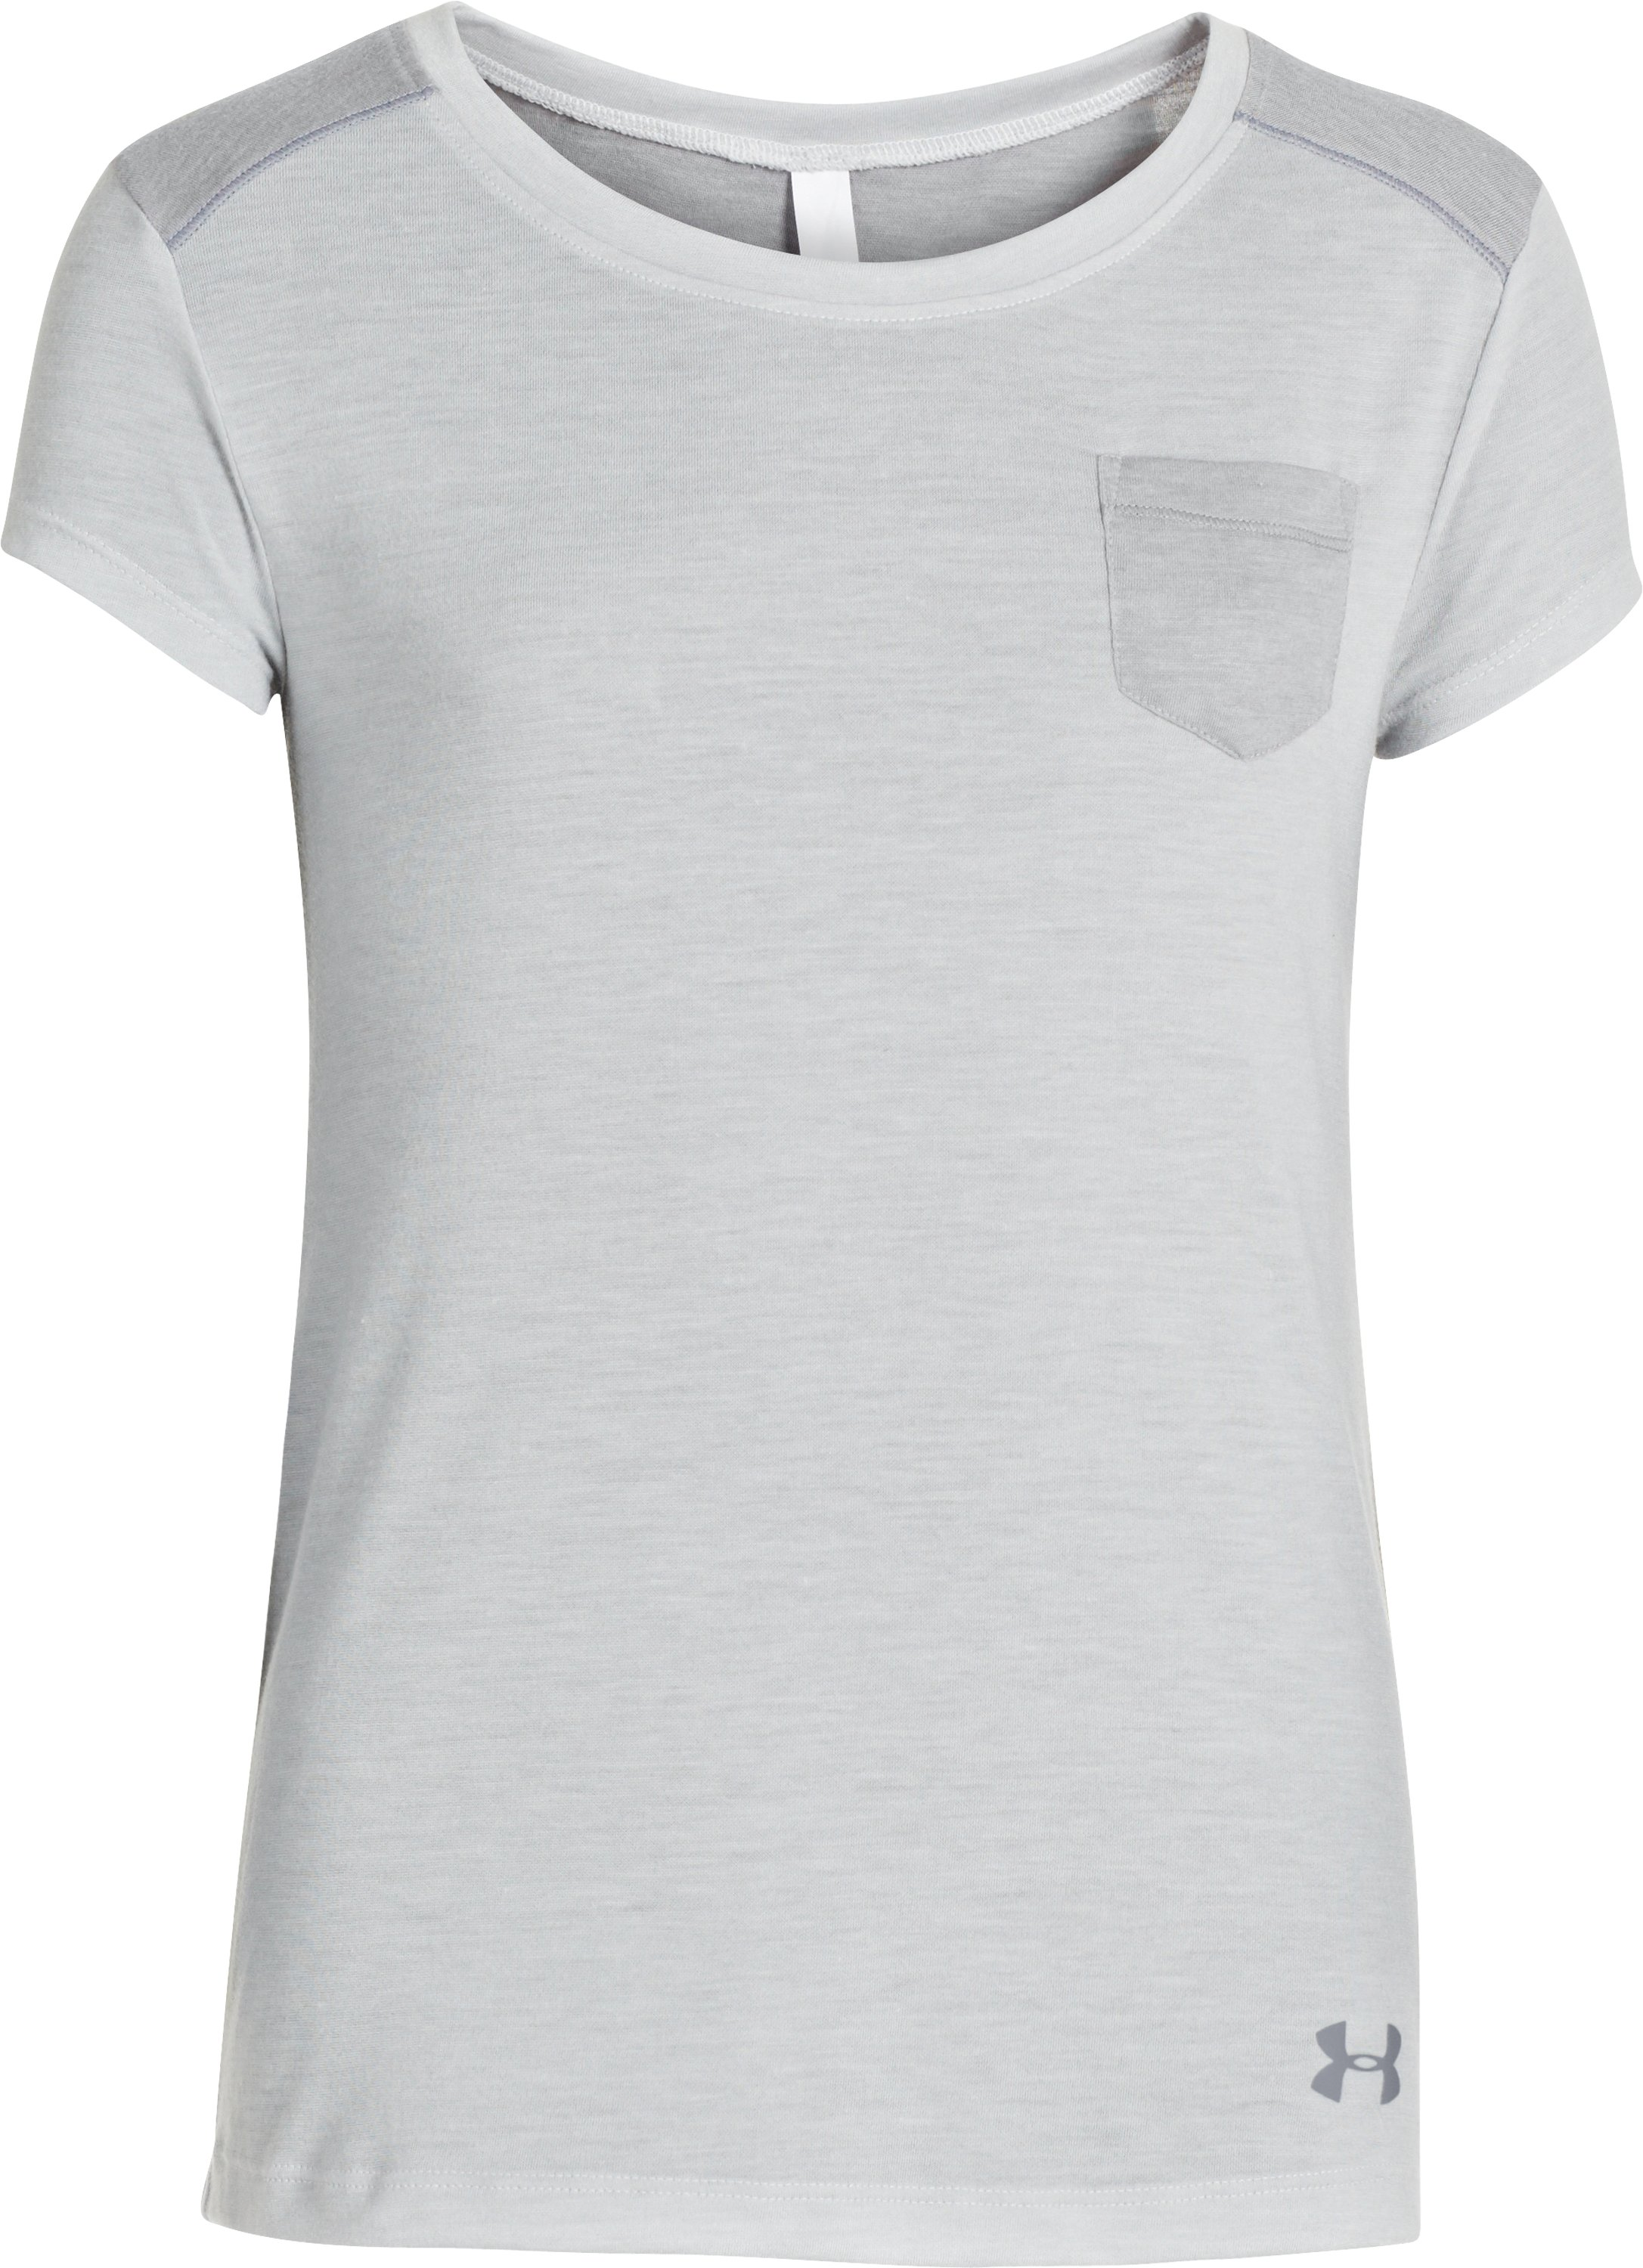 Girls' UA Studio Pocket T-Shirt, Silver Heather,